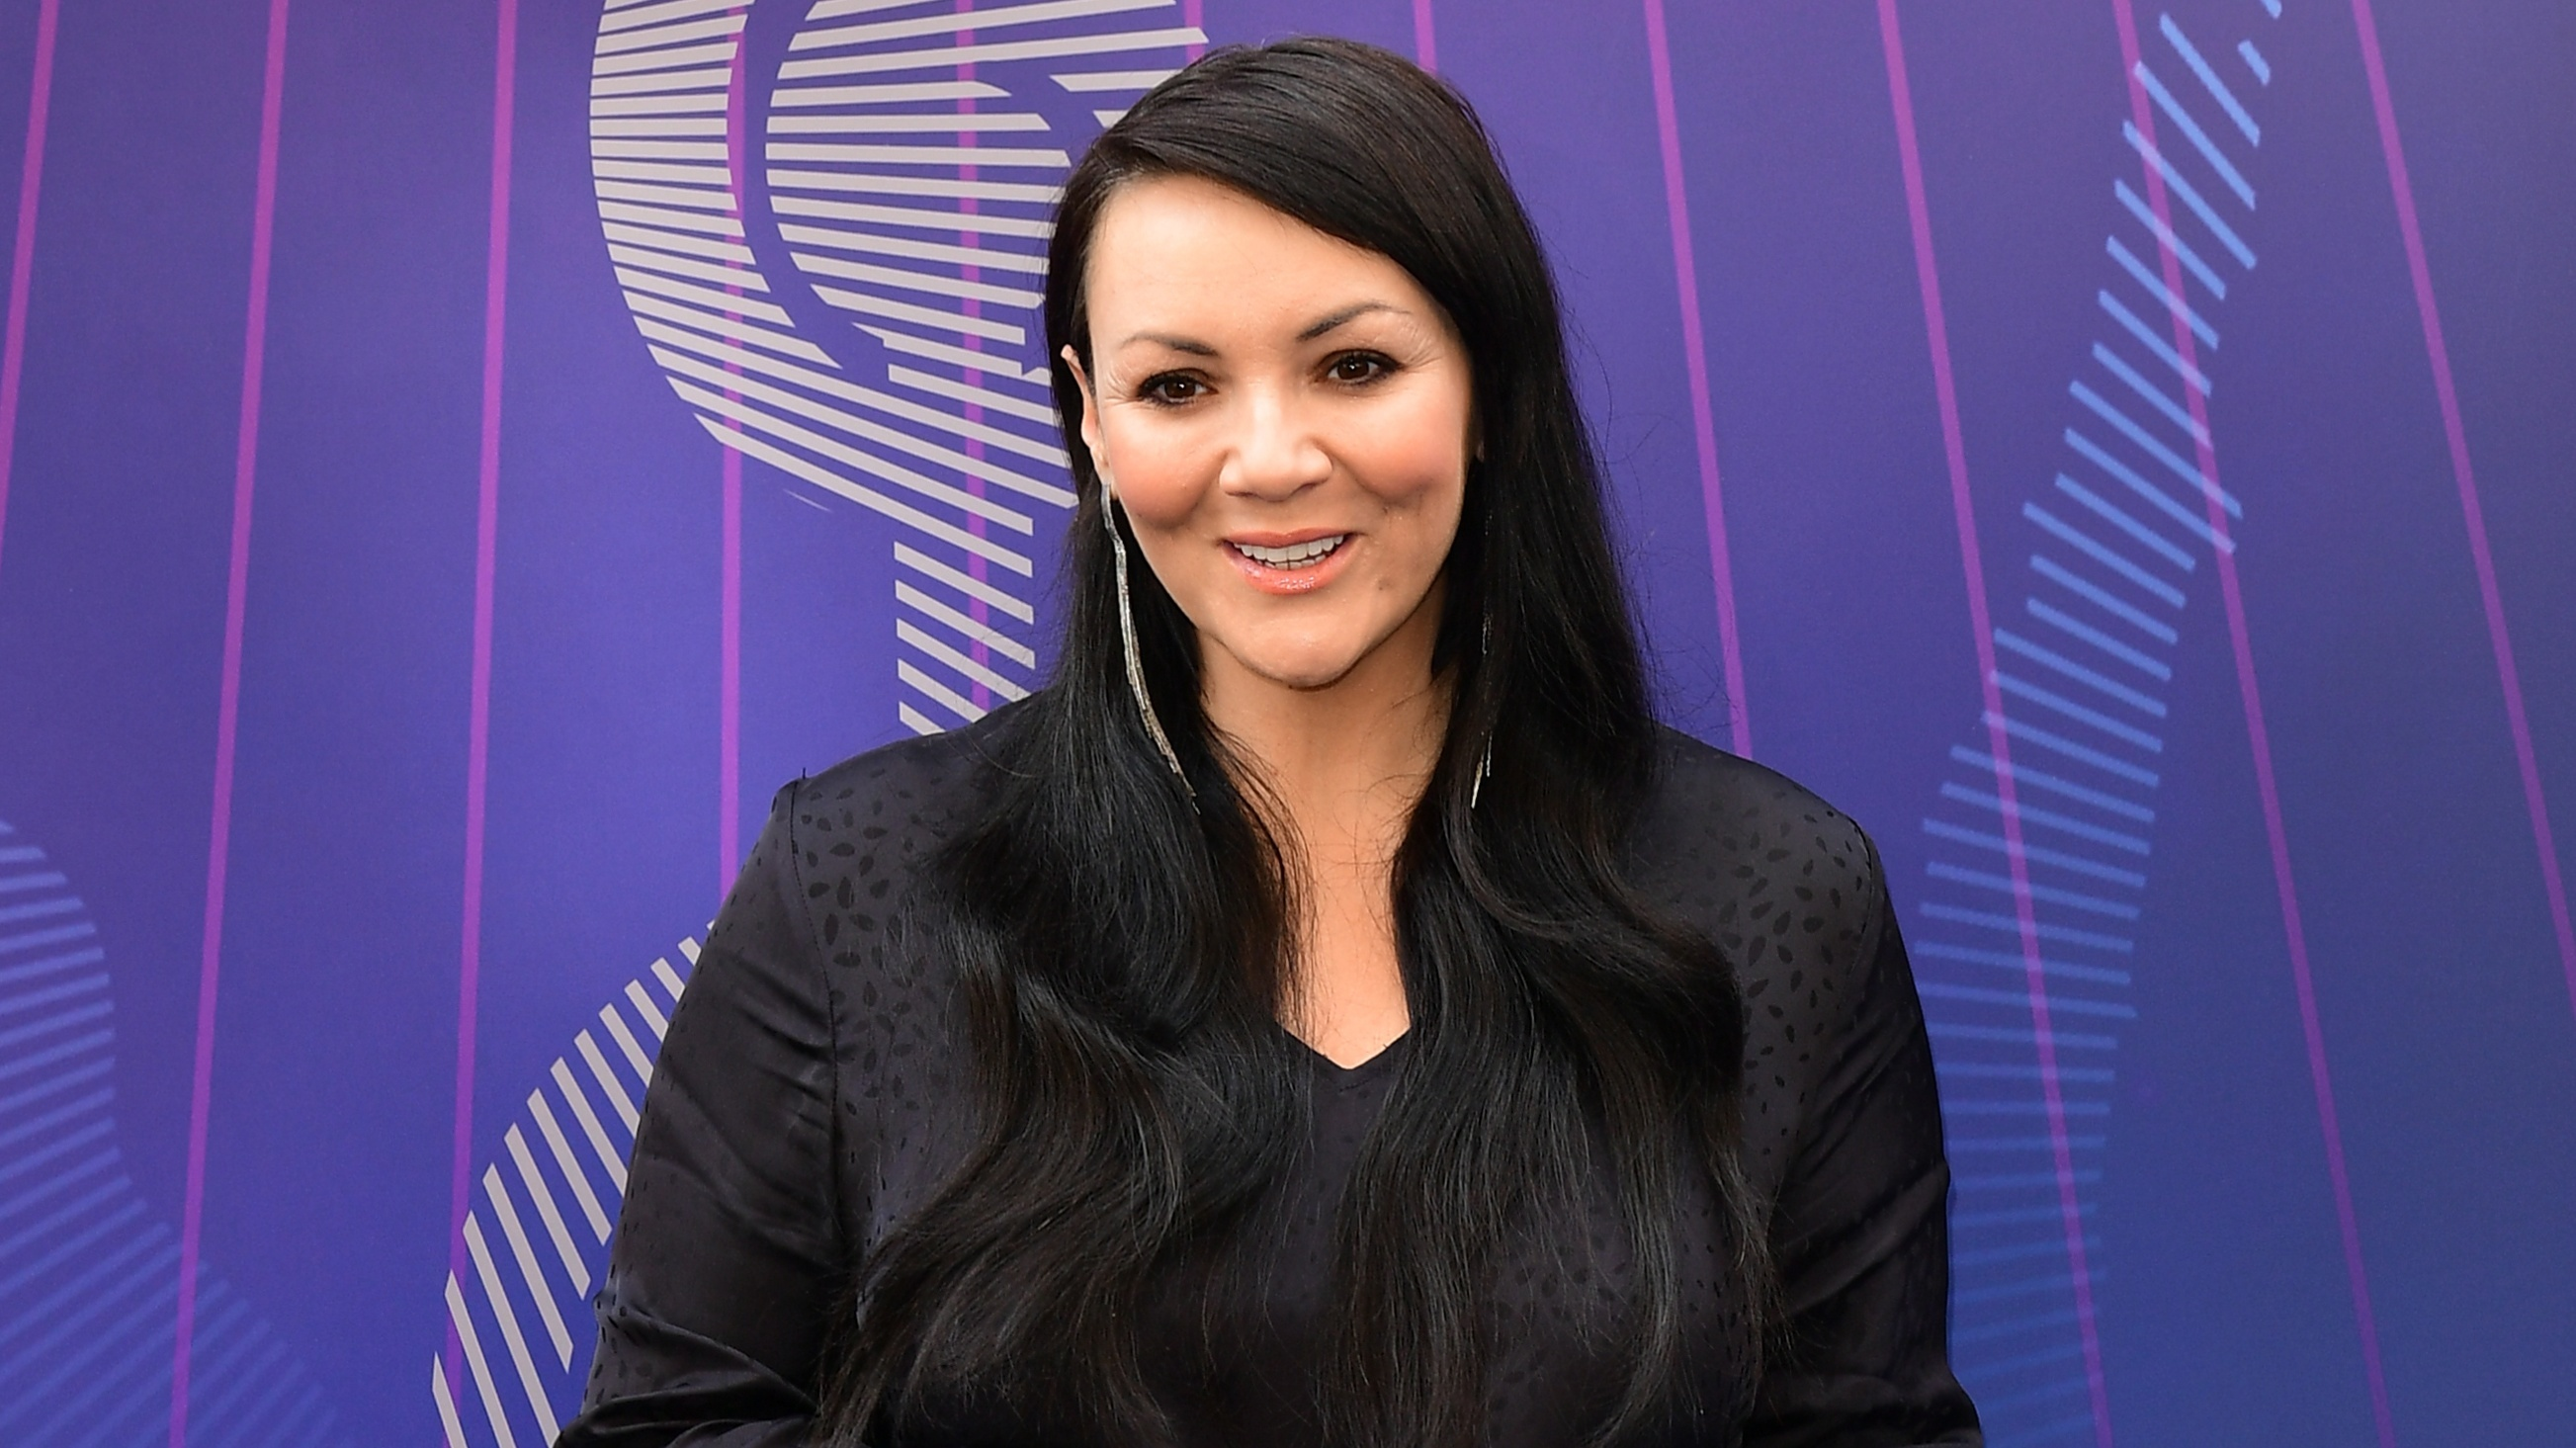 Martine McCutcheon shares joy at making music again after battle with illnesses (Ian West/PA)